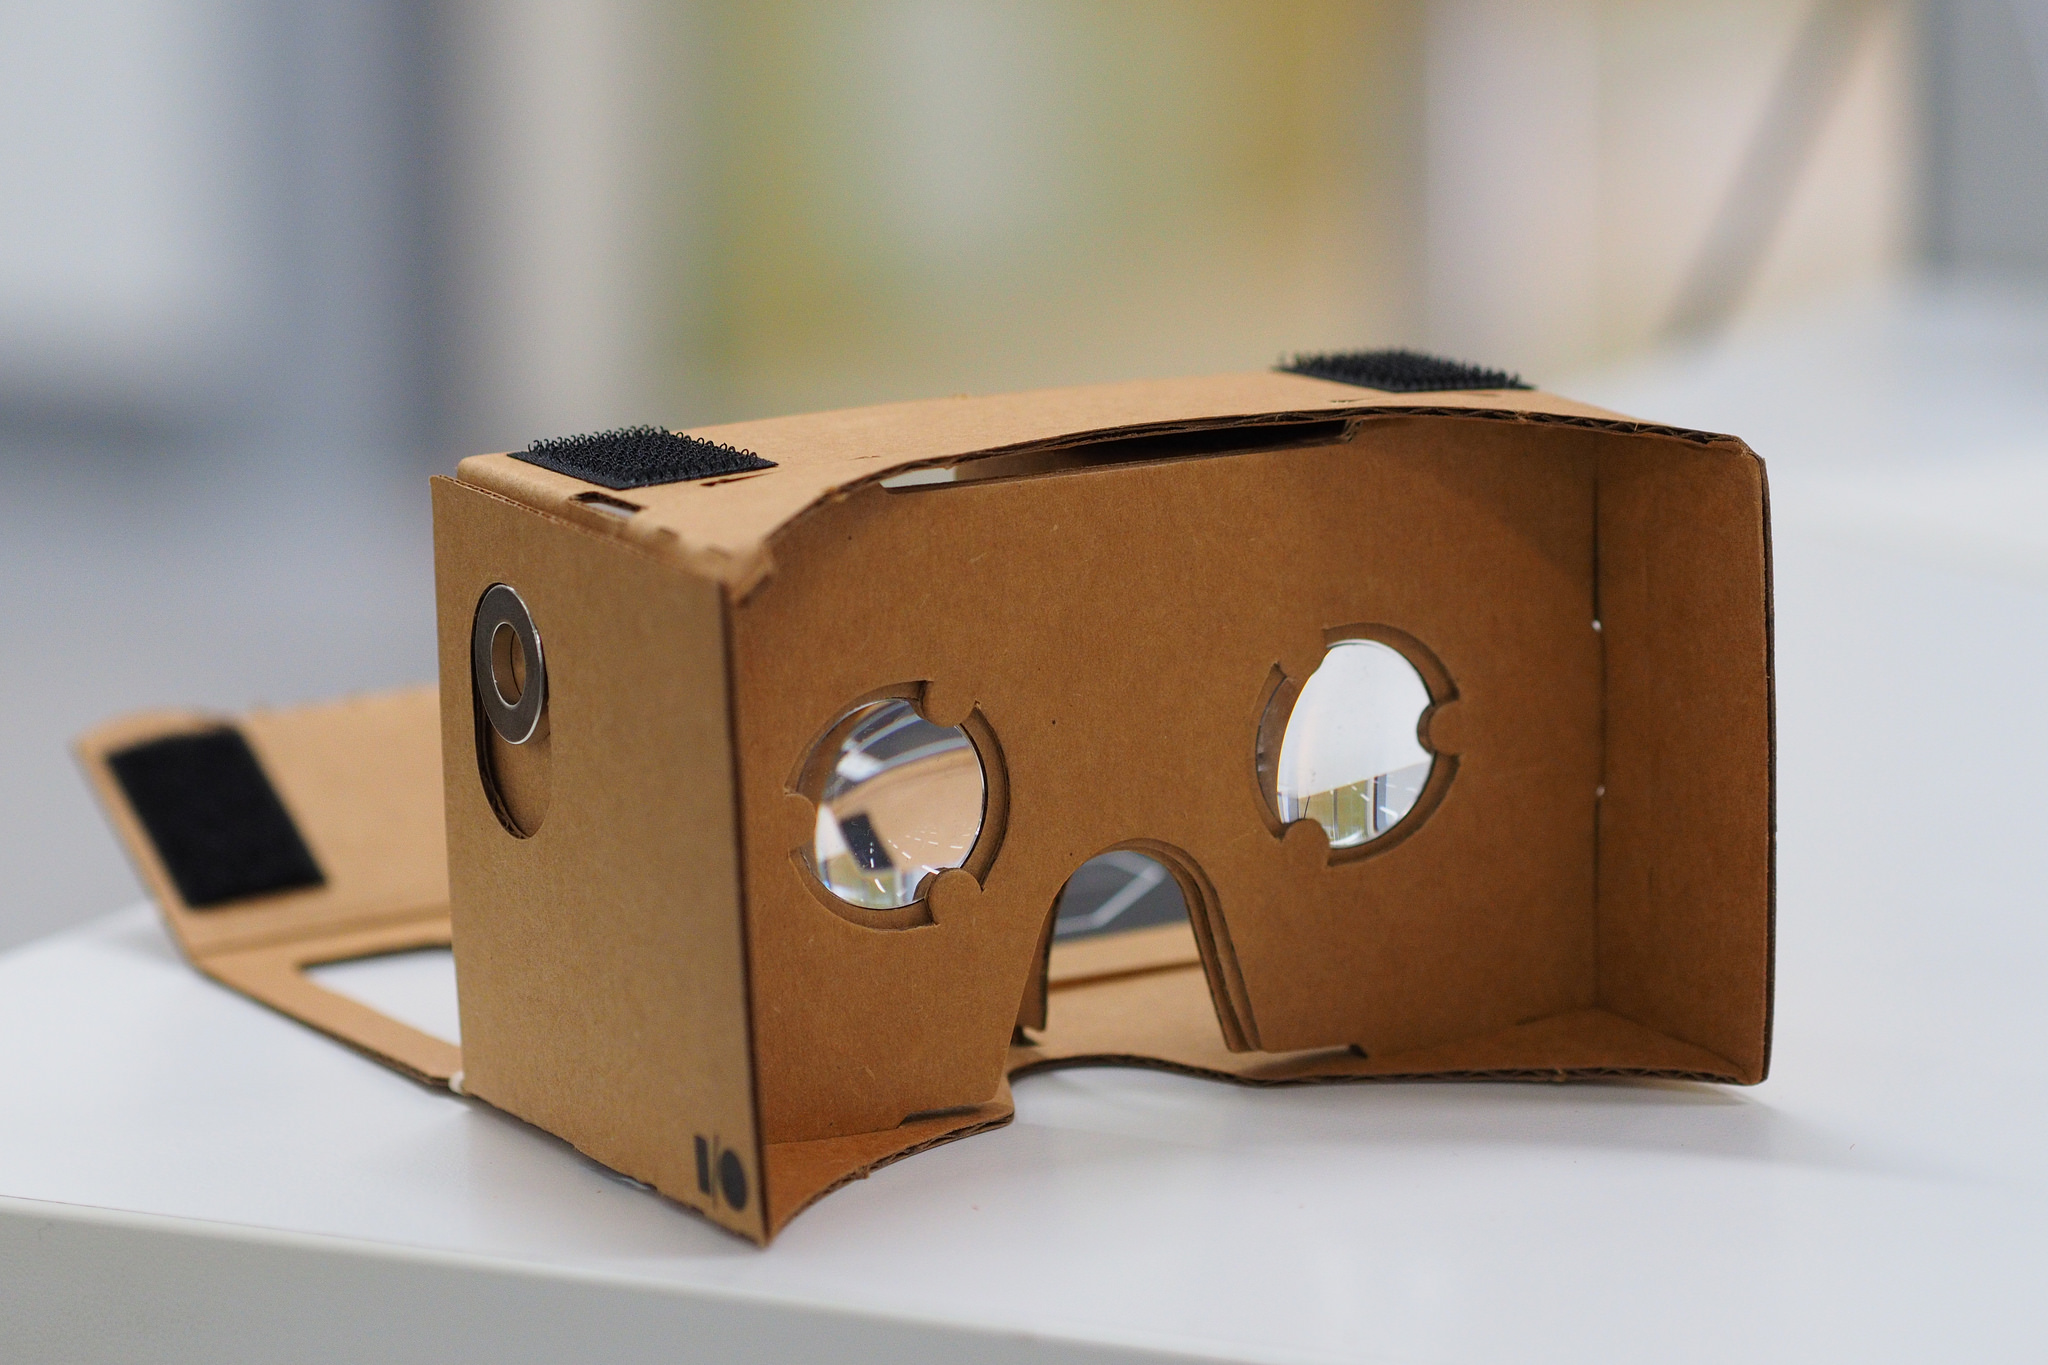 google cardboard, wearable tech future, wearable app future